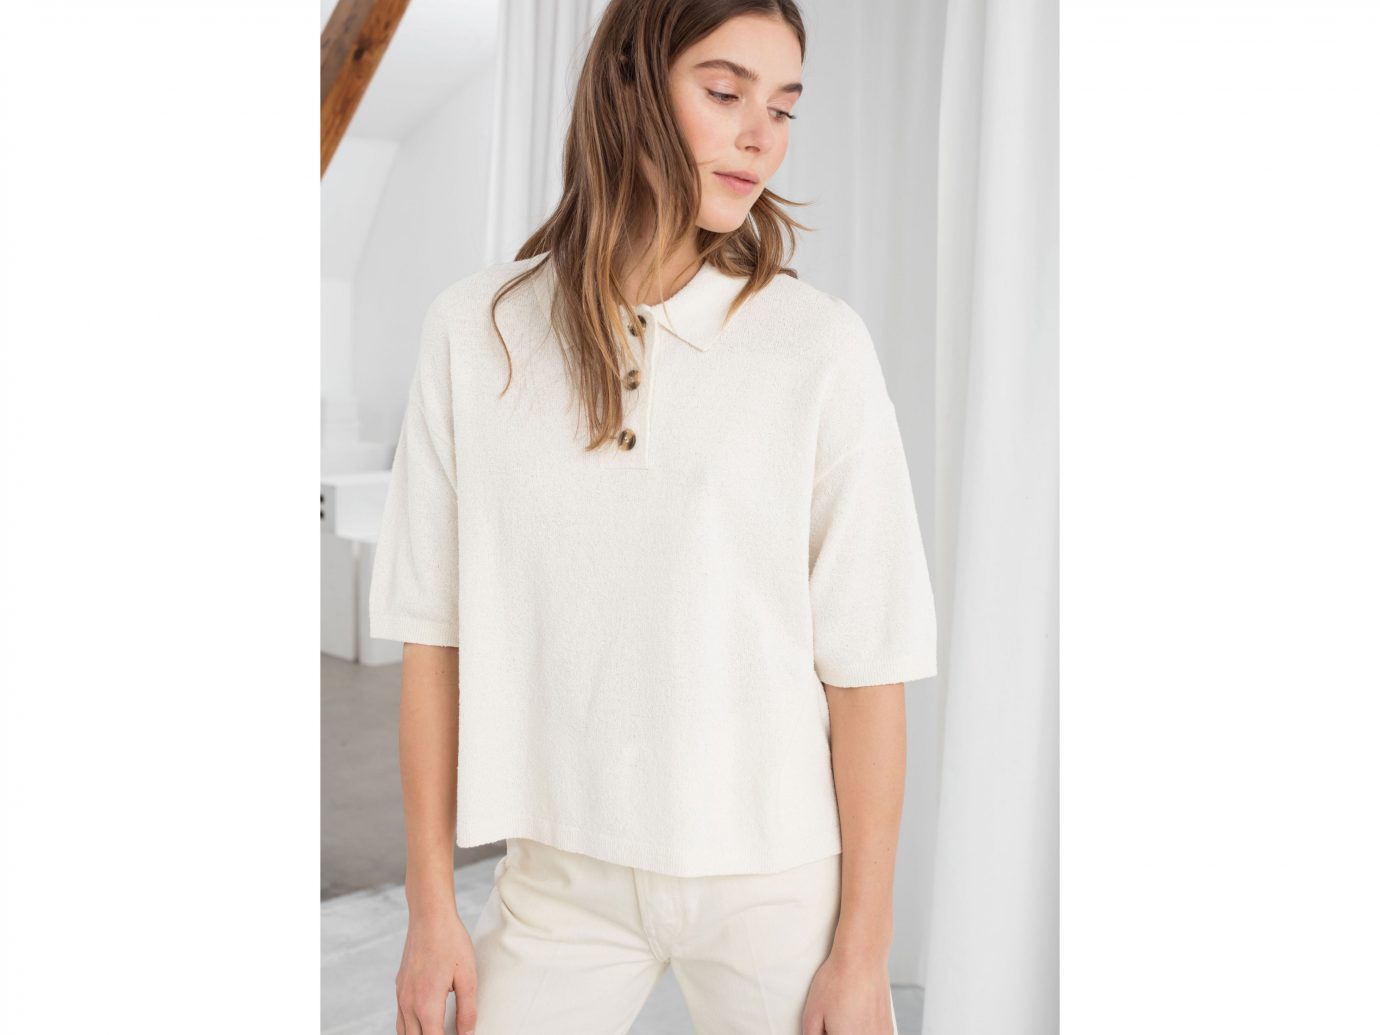 & Other Stories Textured Cotton Blend Polo Top